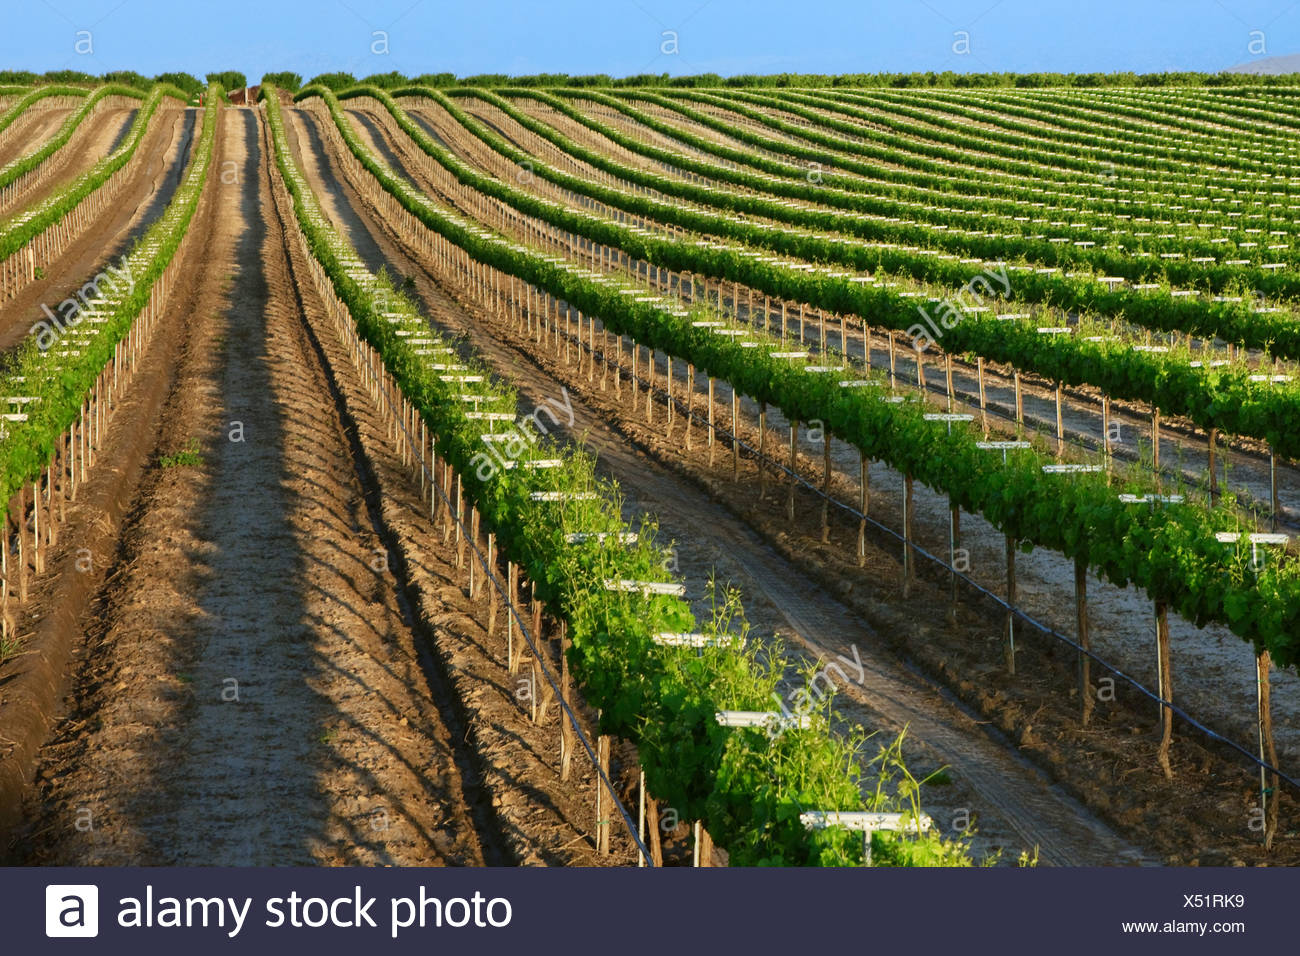 Agriculture - A rolling Muscat wine grape vineyard showing late Spring foliage growth in late afternoon sun / California. Stock Photo